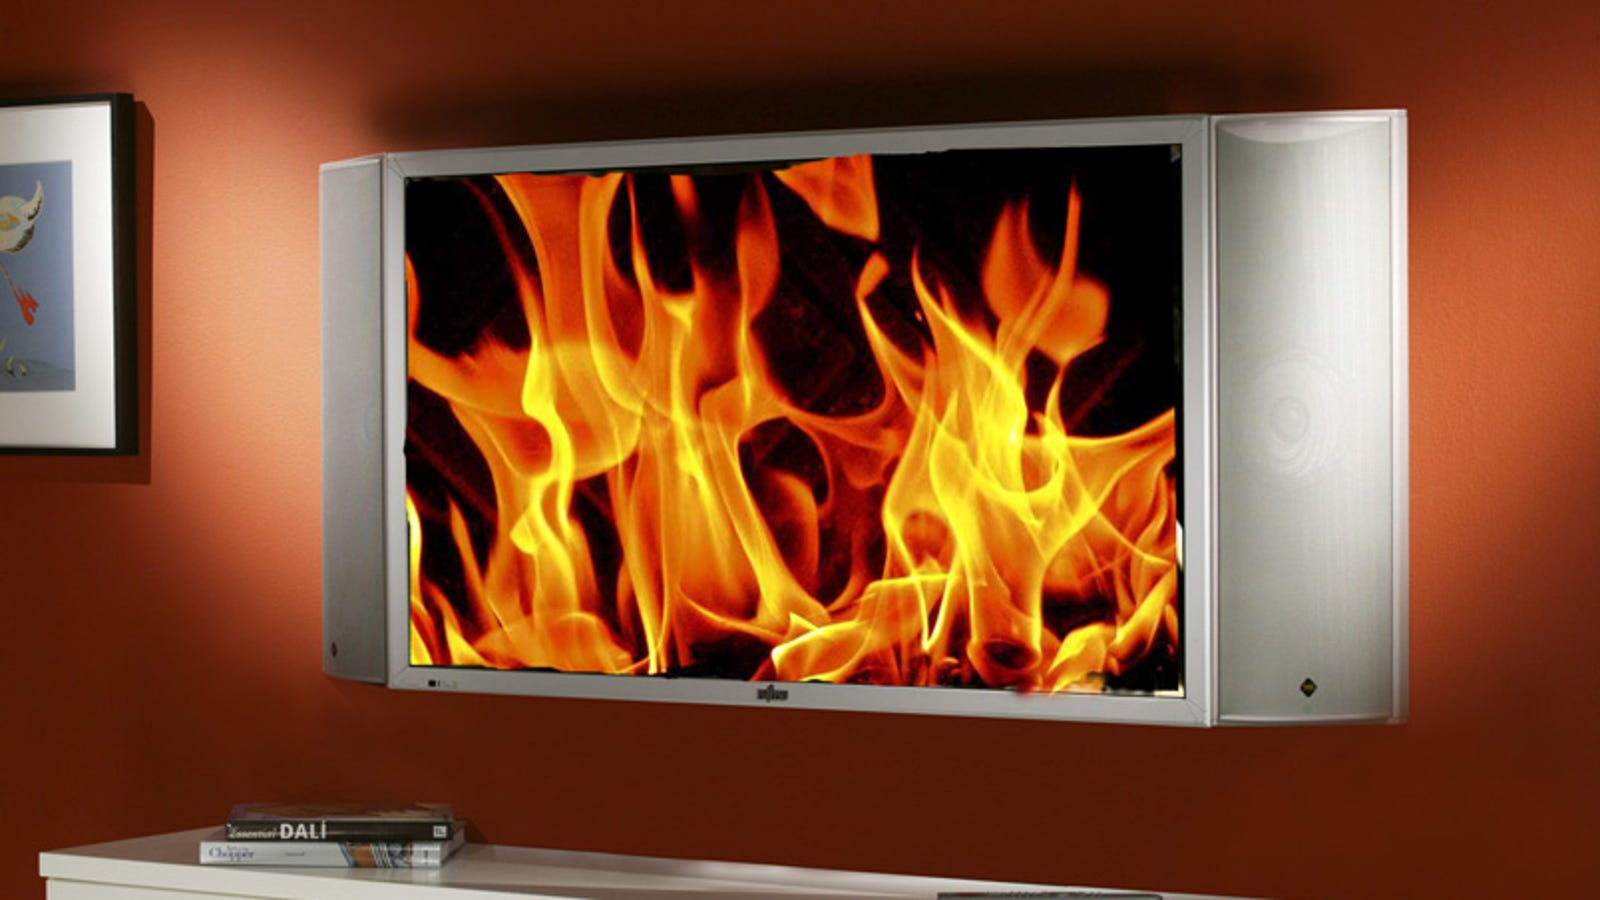 Your Wall Mounted Hdtv Probably Violates Electrical Codes Household Wiring Code Canada